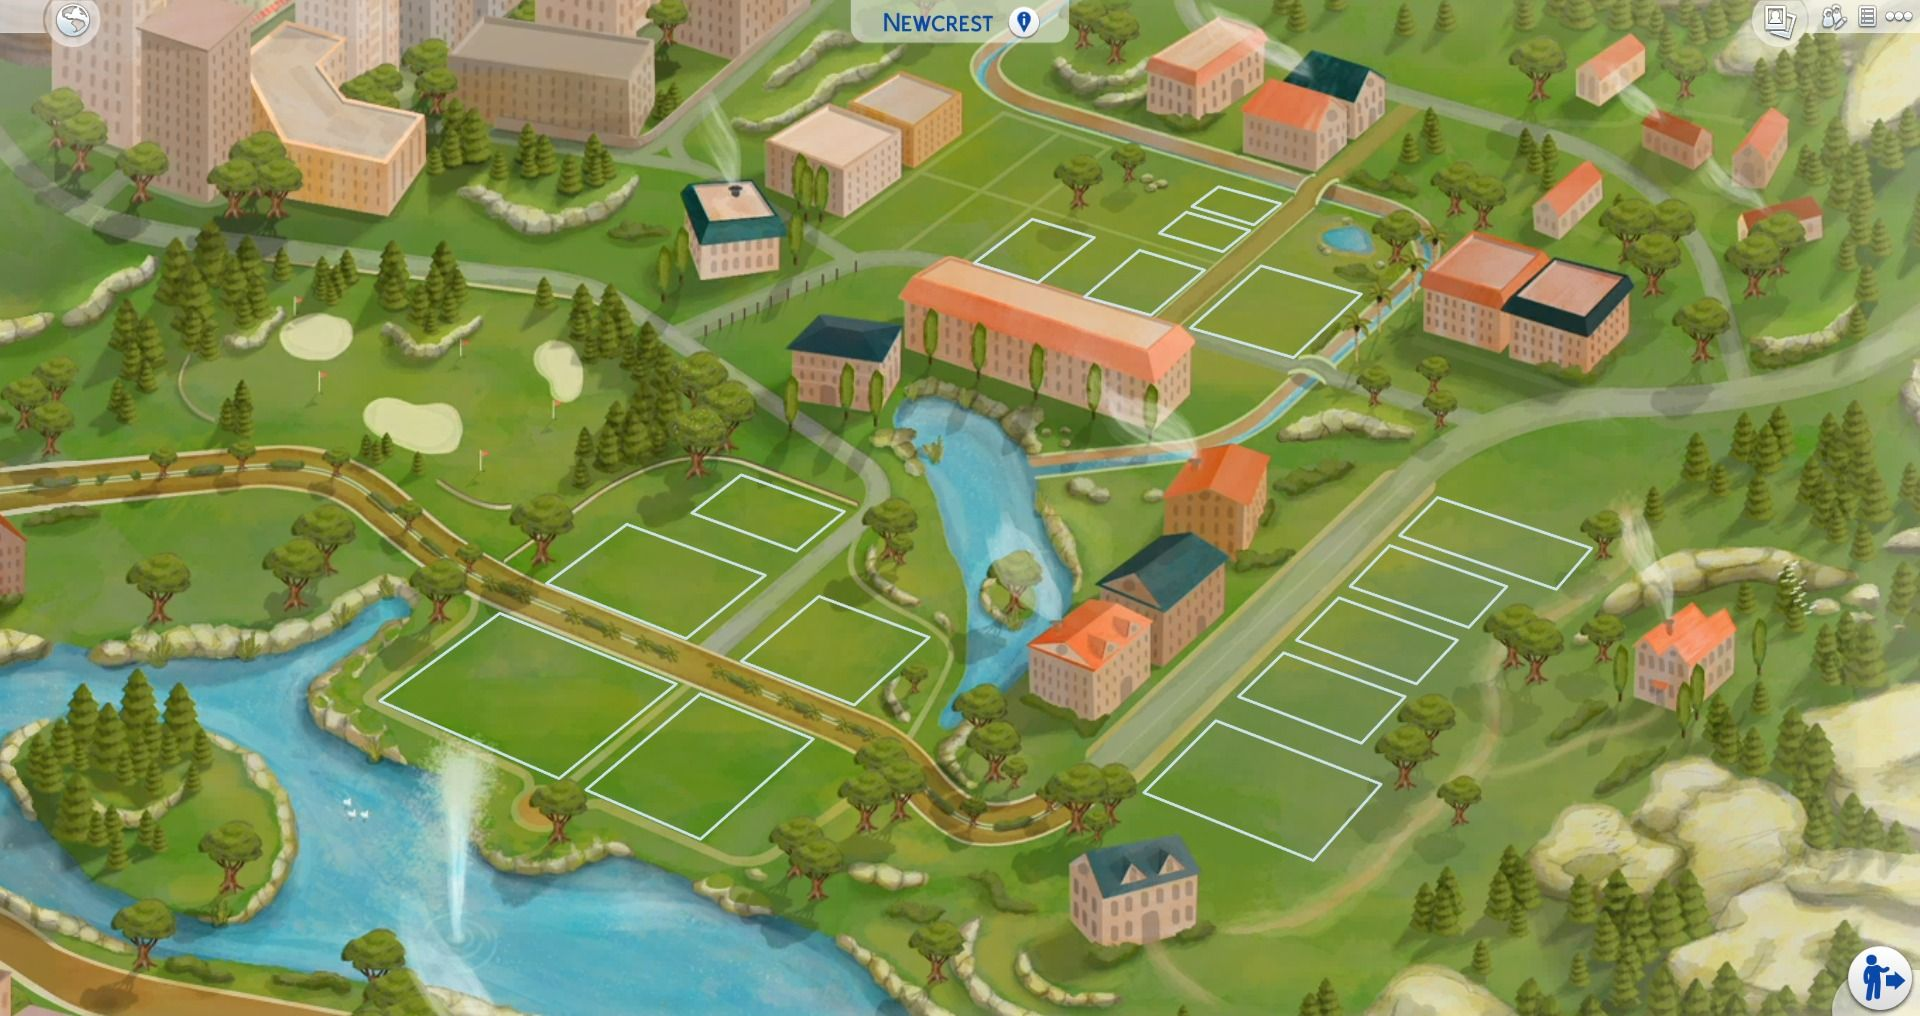 sims 4 world map download Download These Beautiful World Map Replacements For The Sims 4